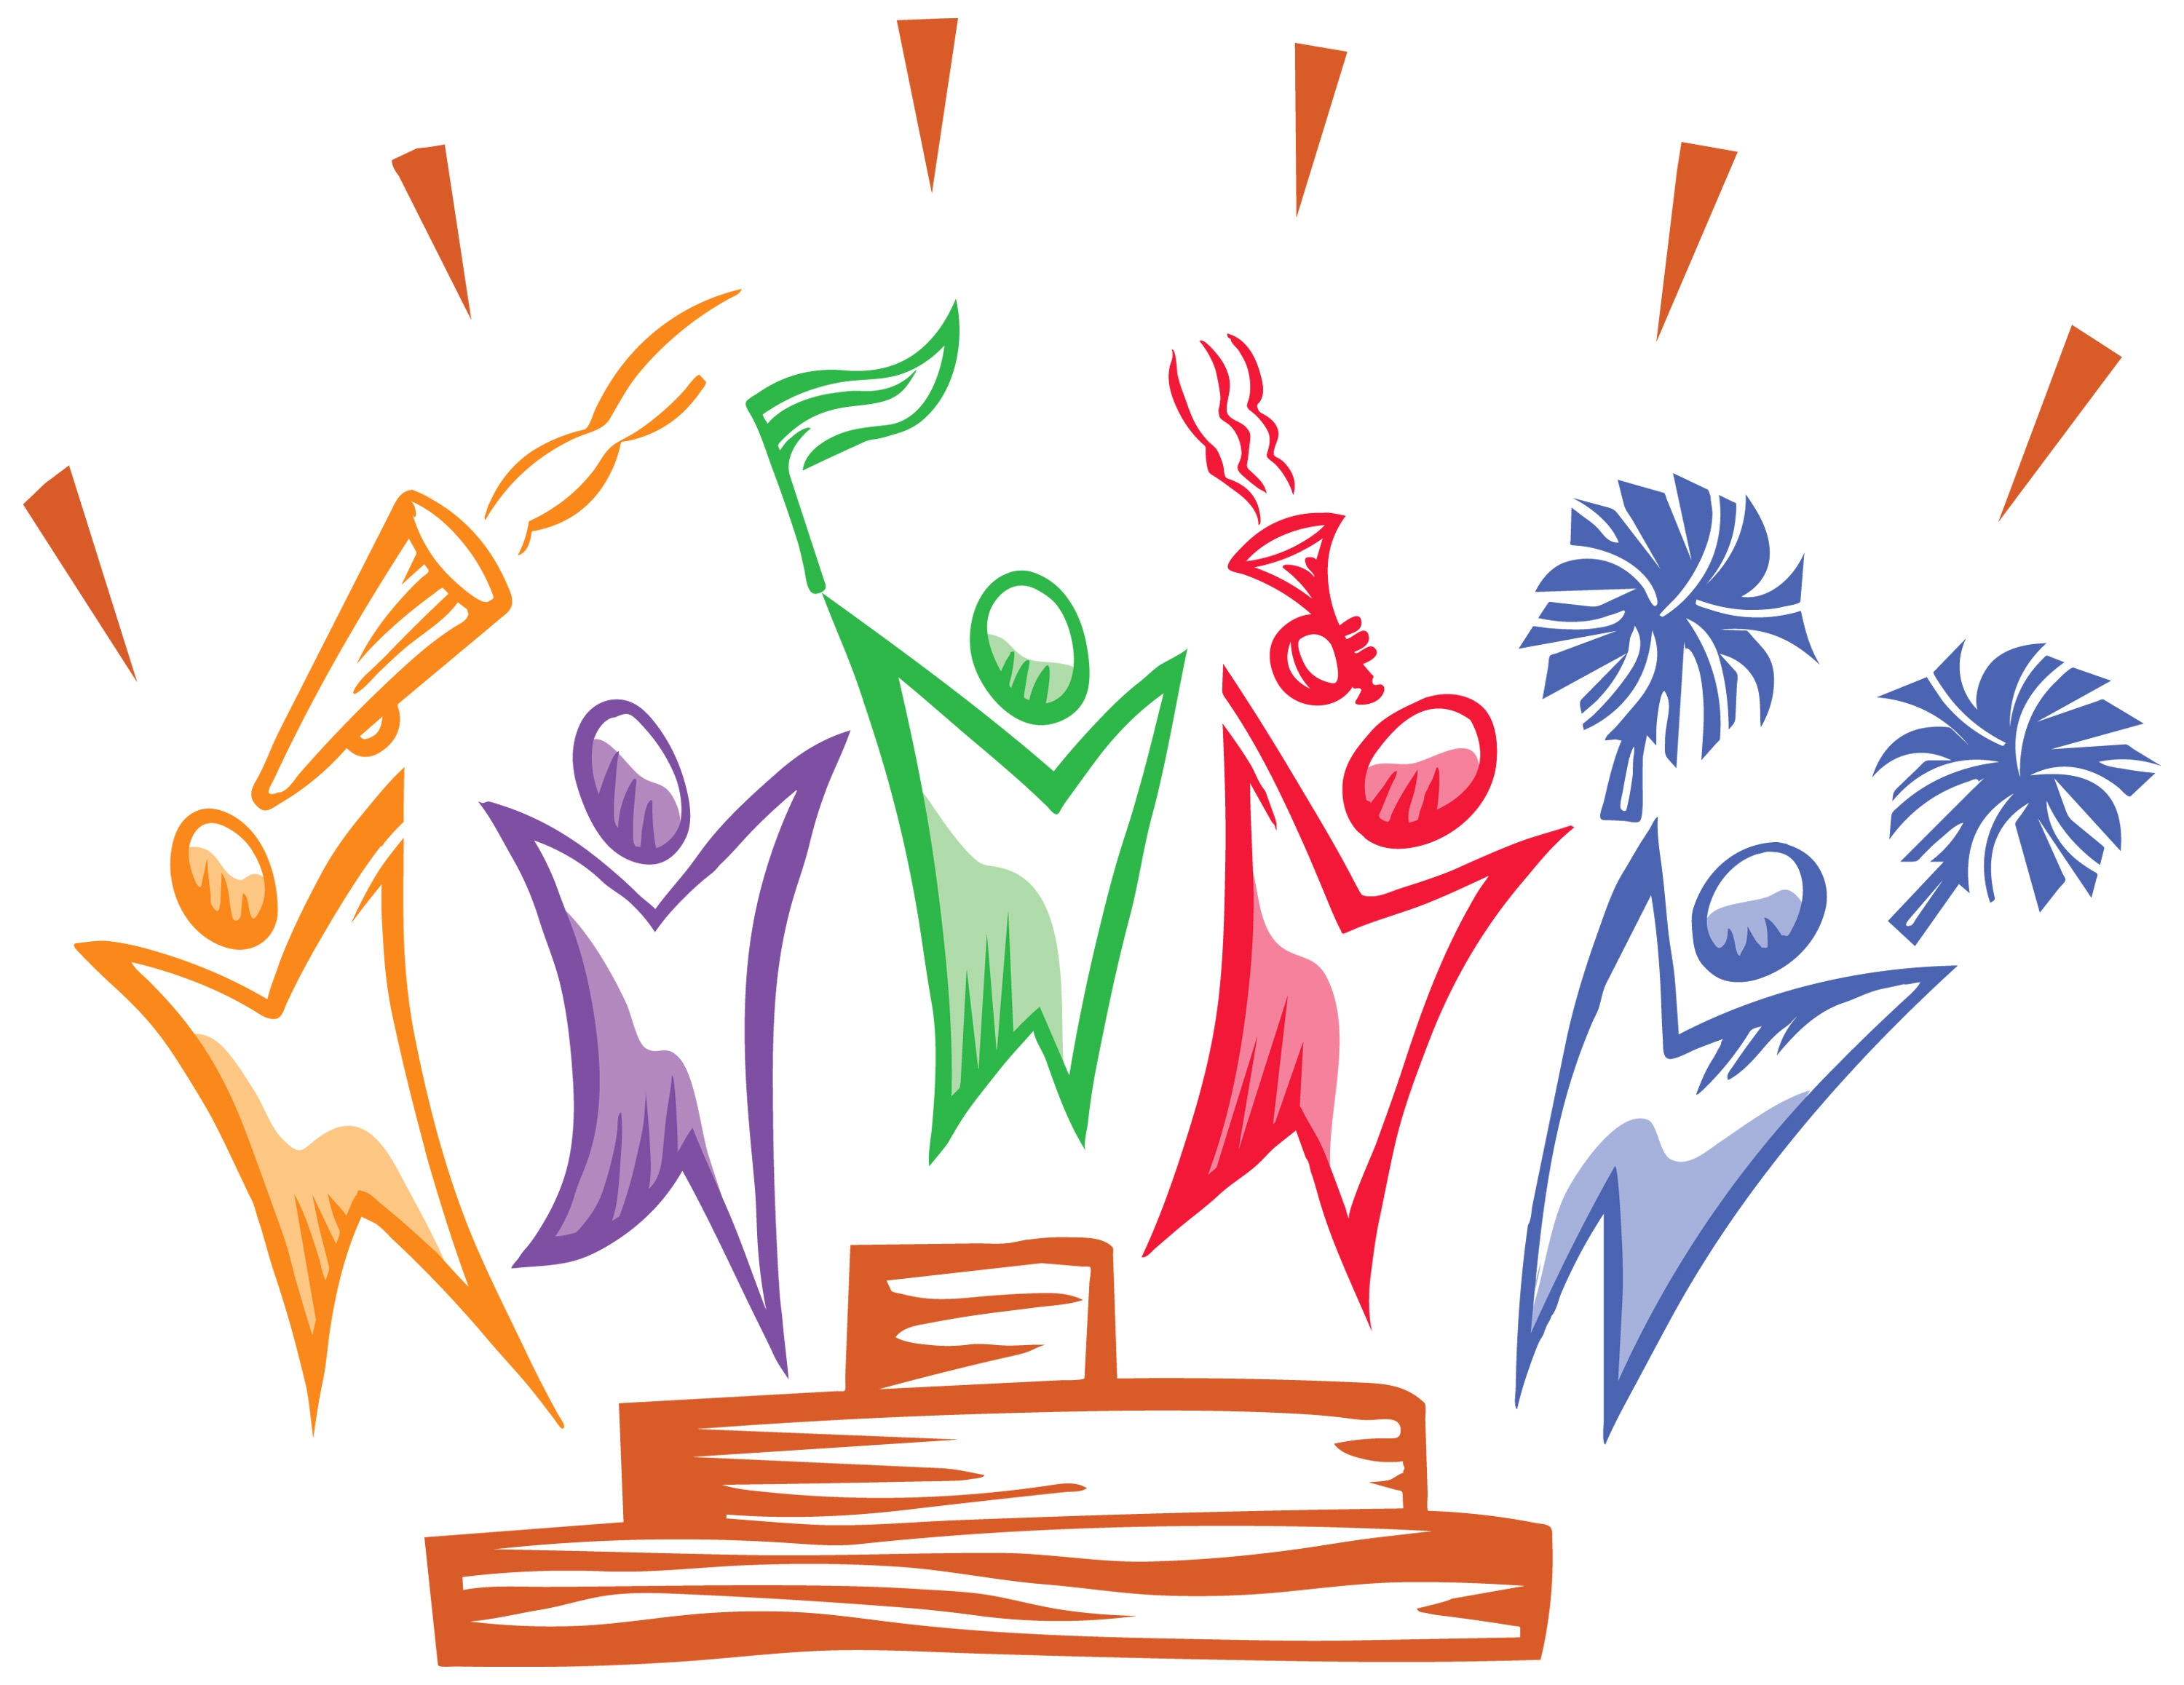 Students clipart celebration. New design digital collection